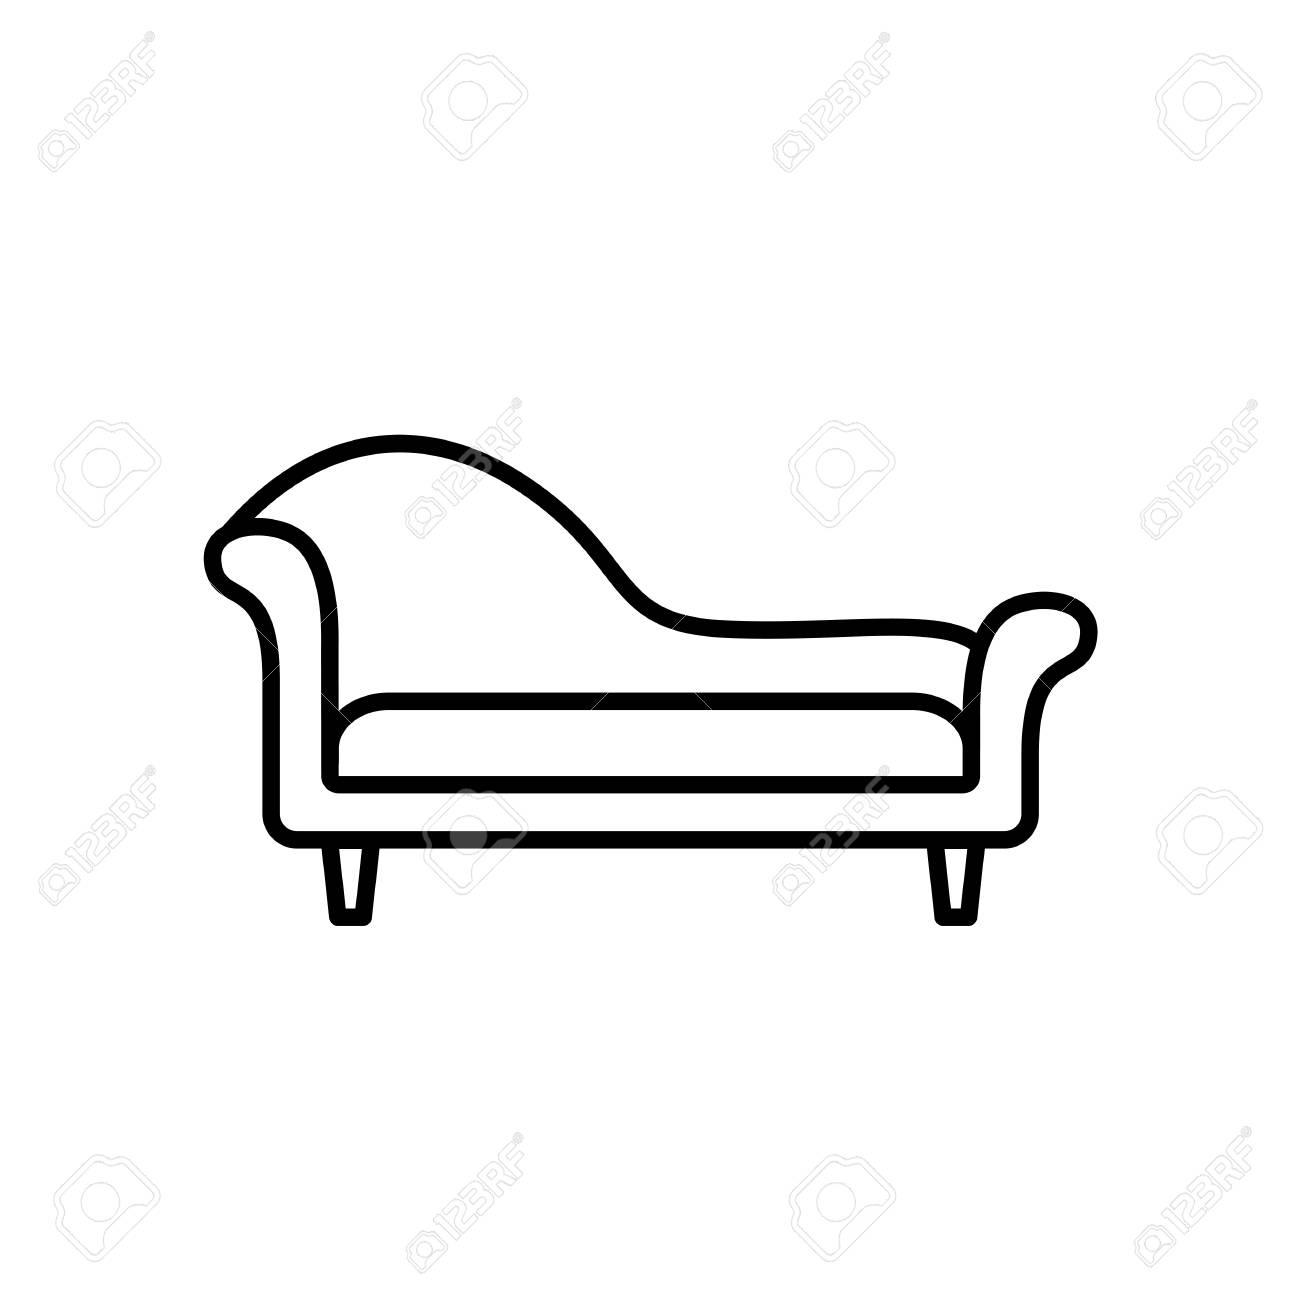 Black White Vector Illustration Of Chaise Lounge Sofa Line Royalty Free Cliparts Vectors And Stock Illustration Image 109144315